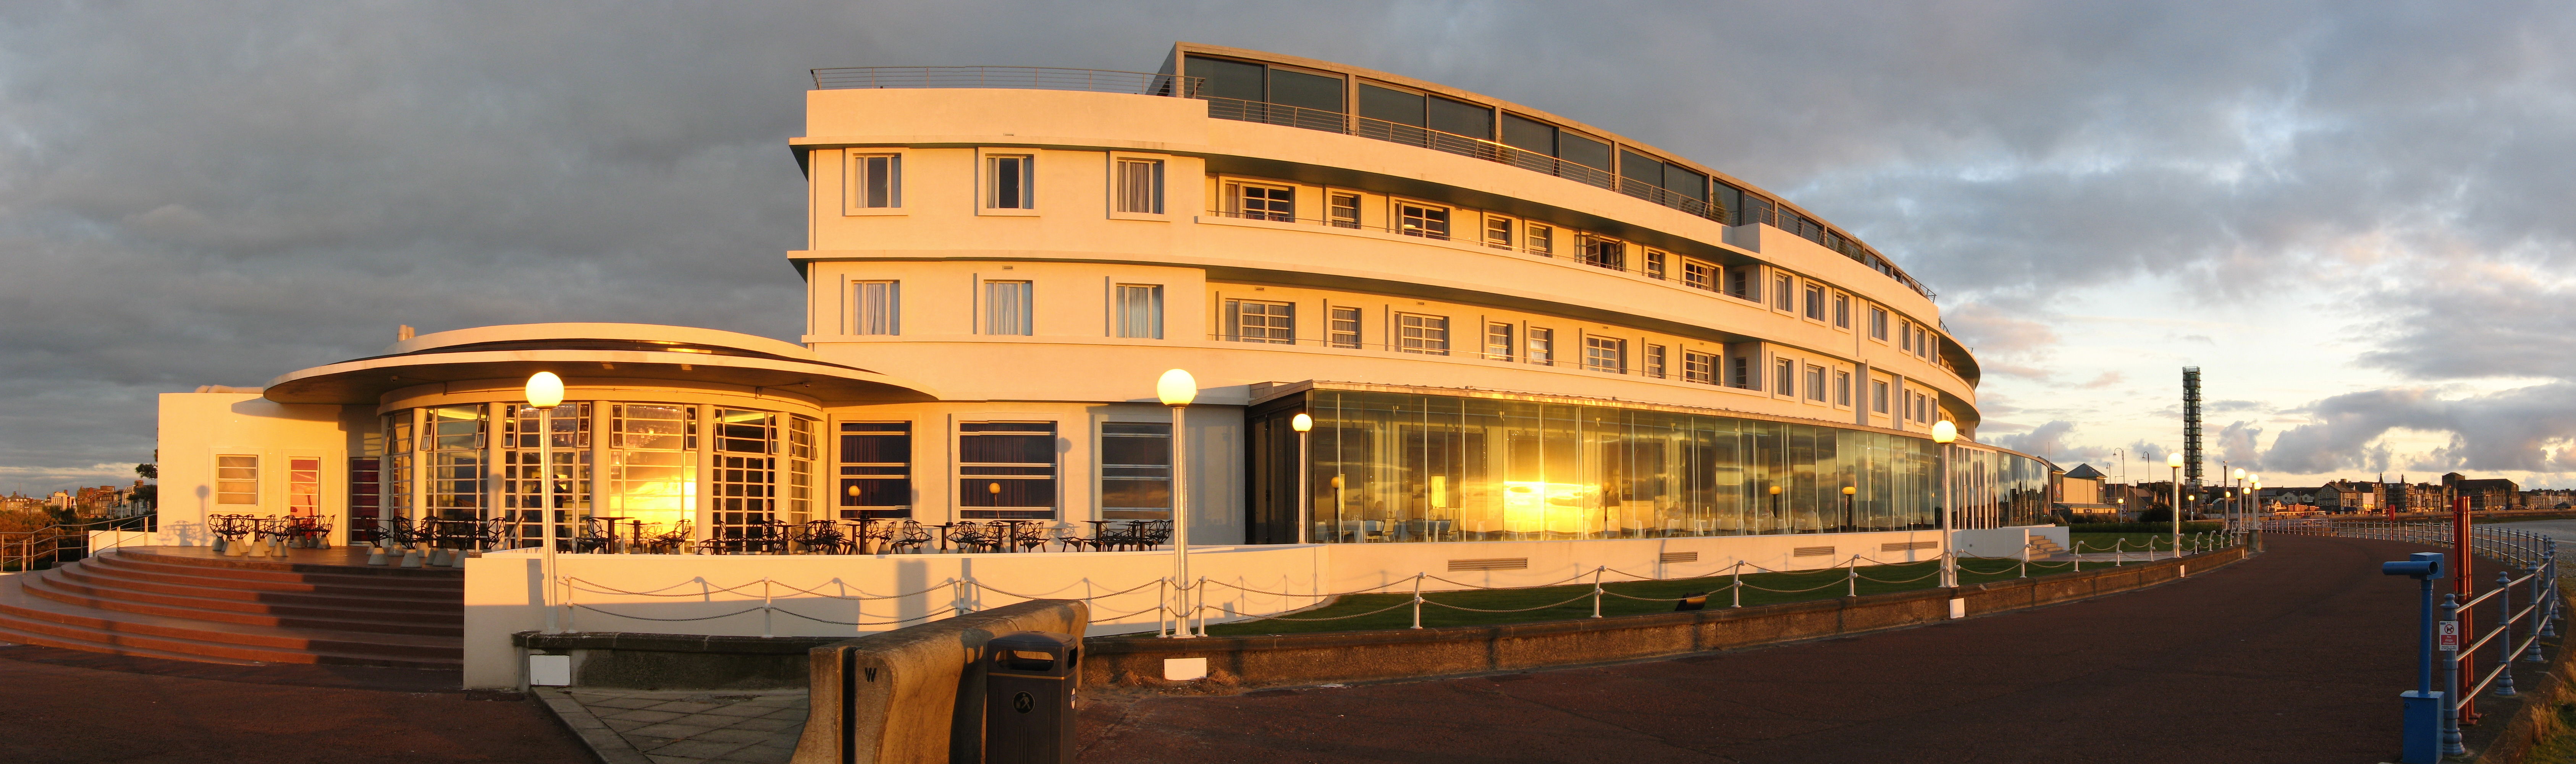 English: Midland Hotel, Morecambe, in evening ...